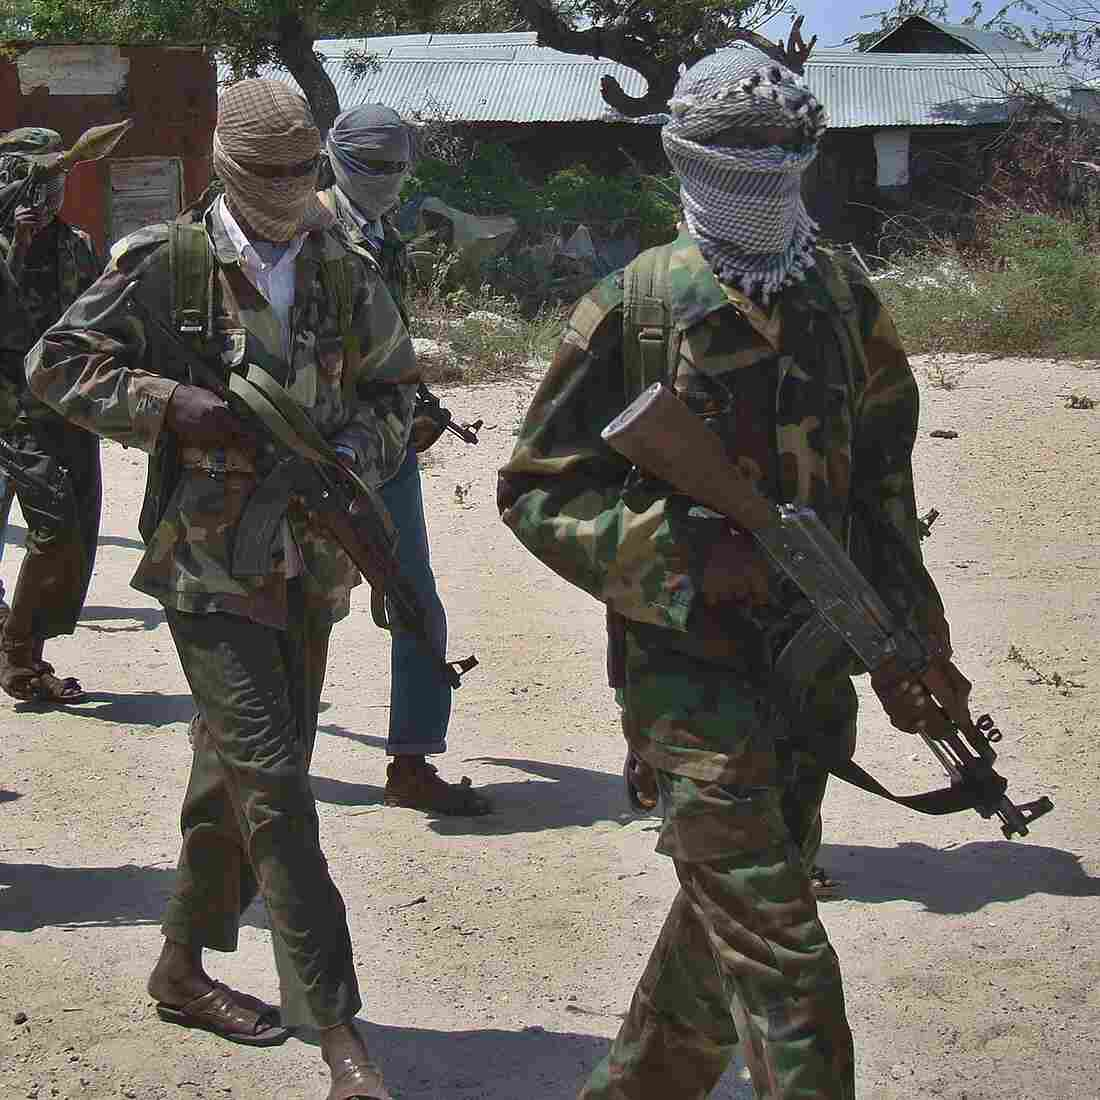 Al-Shabab: One Terror Group, Many Brands